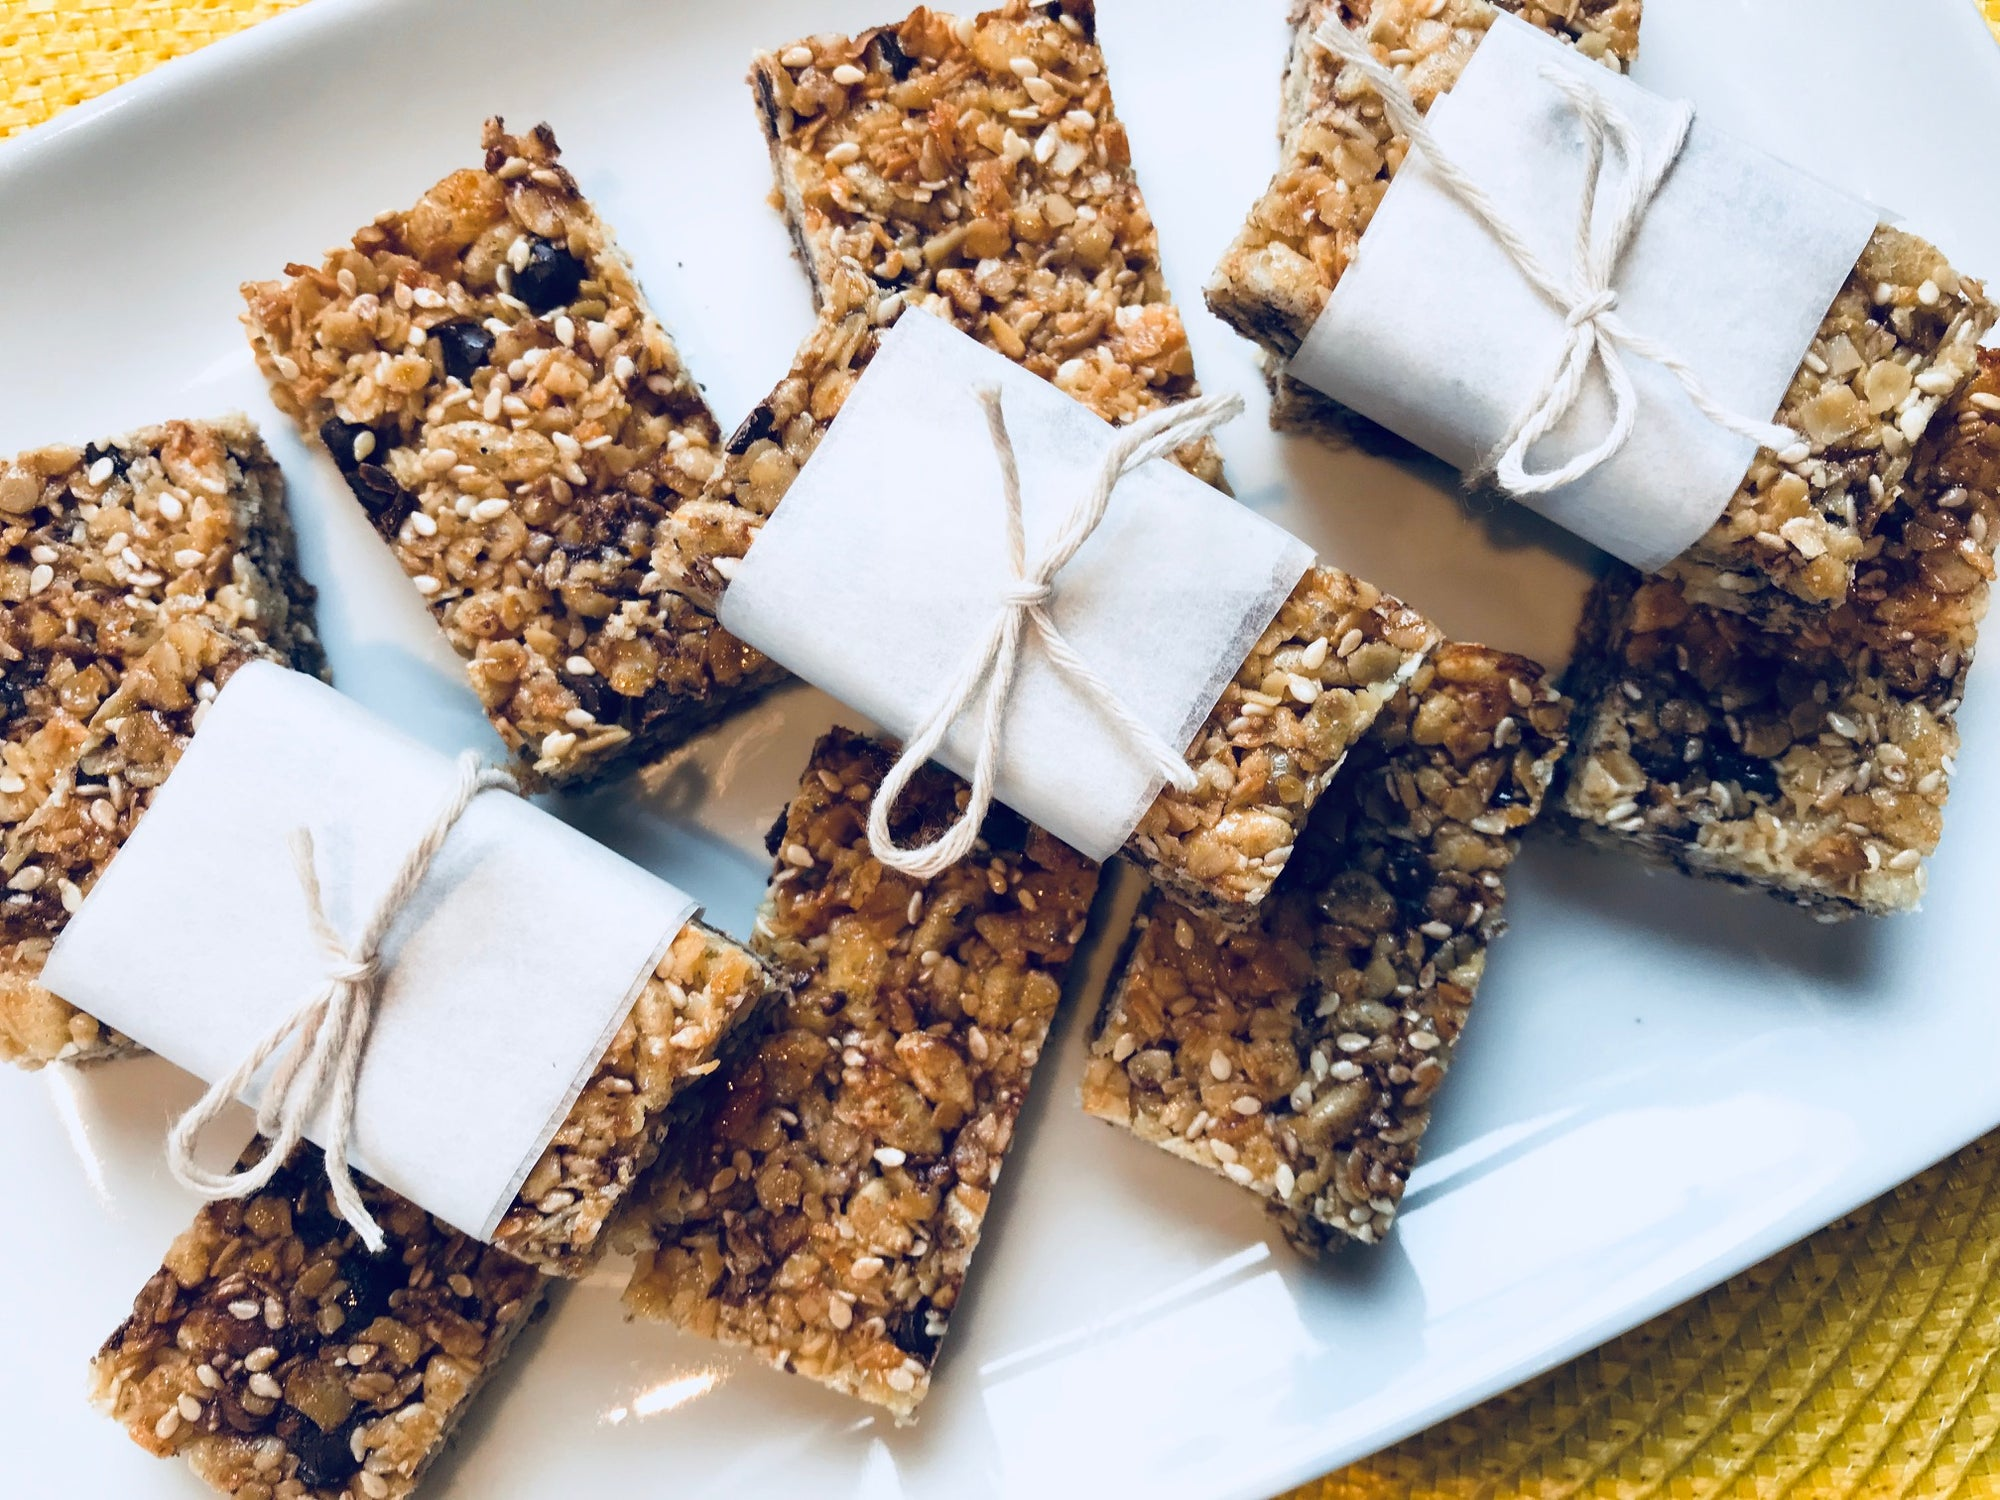 Muesli Bars - No Nuts!